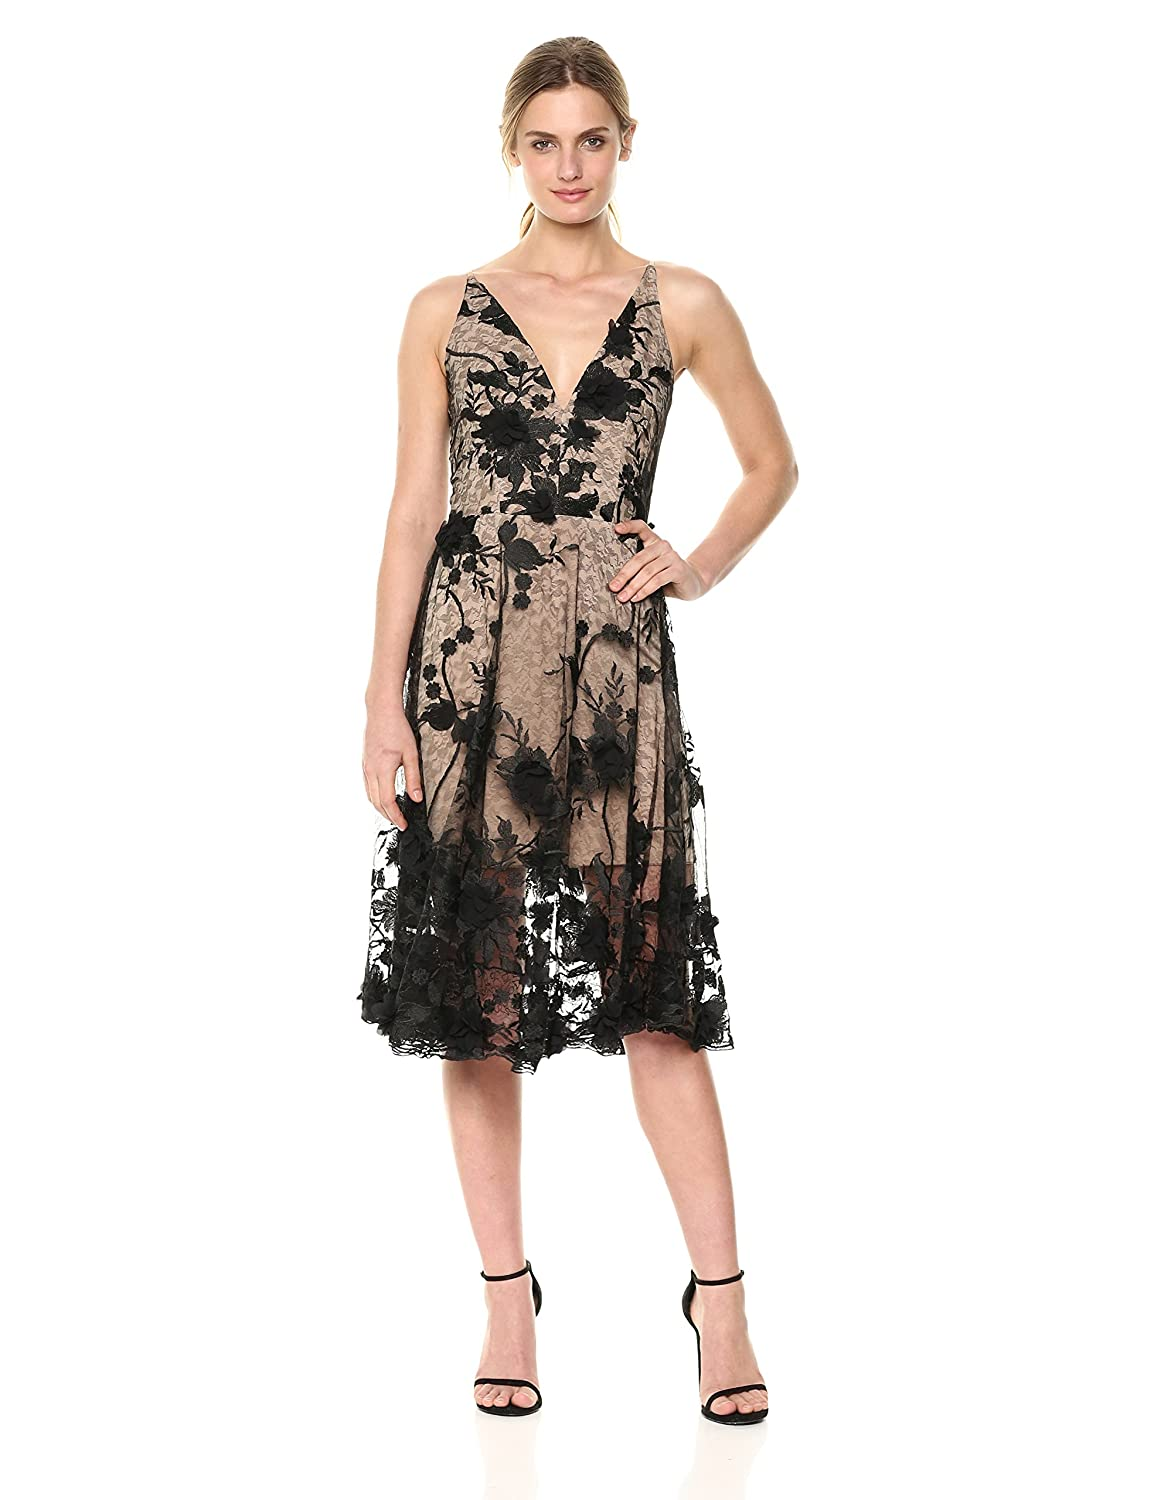 Black   Nude Dress the Population Womens Audrey Spaghetti Strap Midi Aline 3D Floral Dress Special Occasion Dress